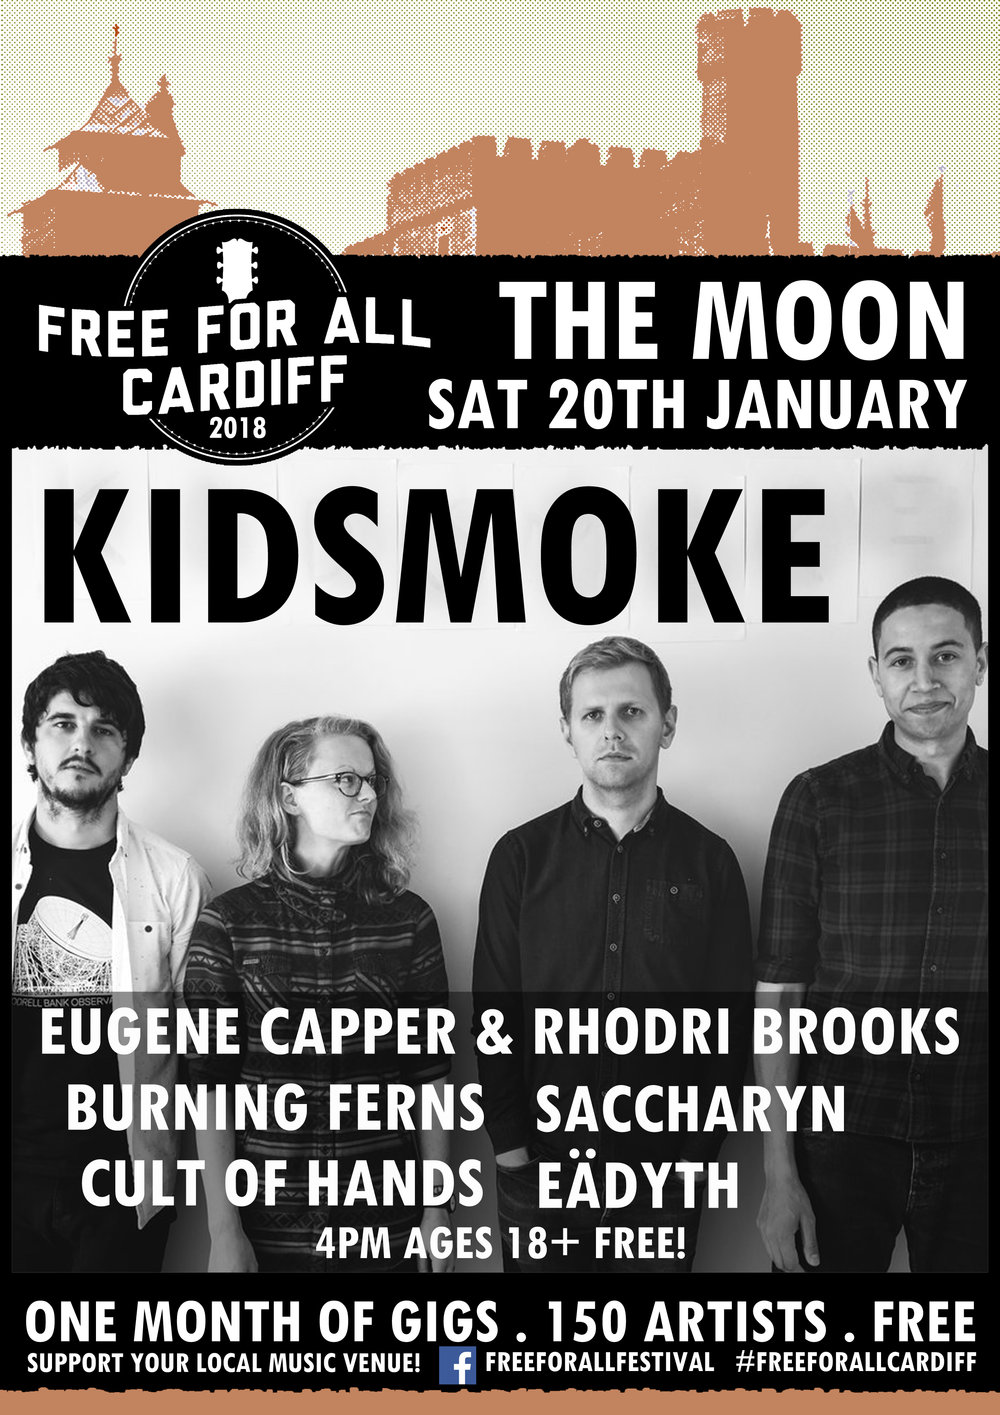 Kidsmoke - Free For Alldayer